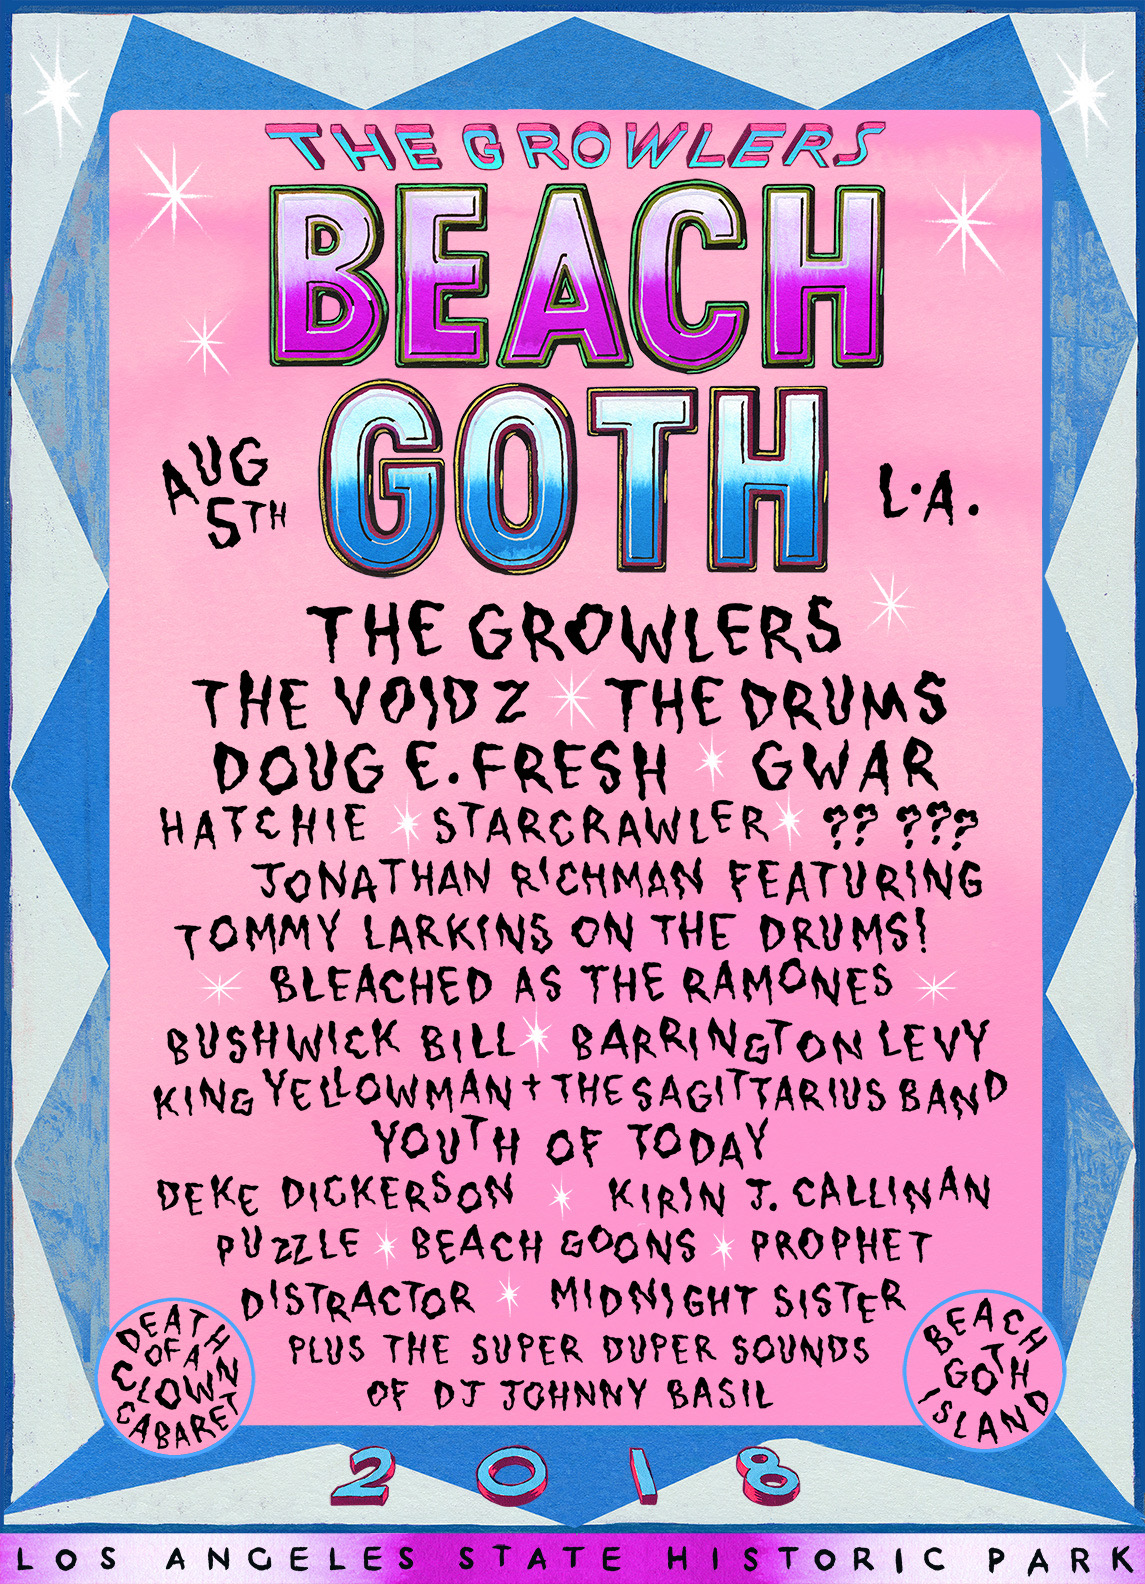 the Growlers Beach Goth Los Angeles CA August 2018